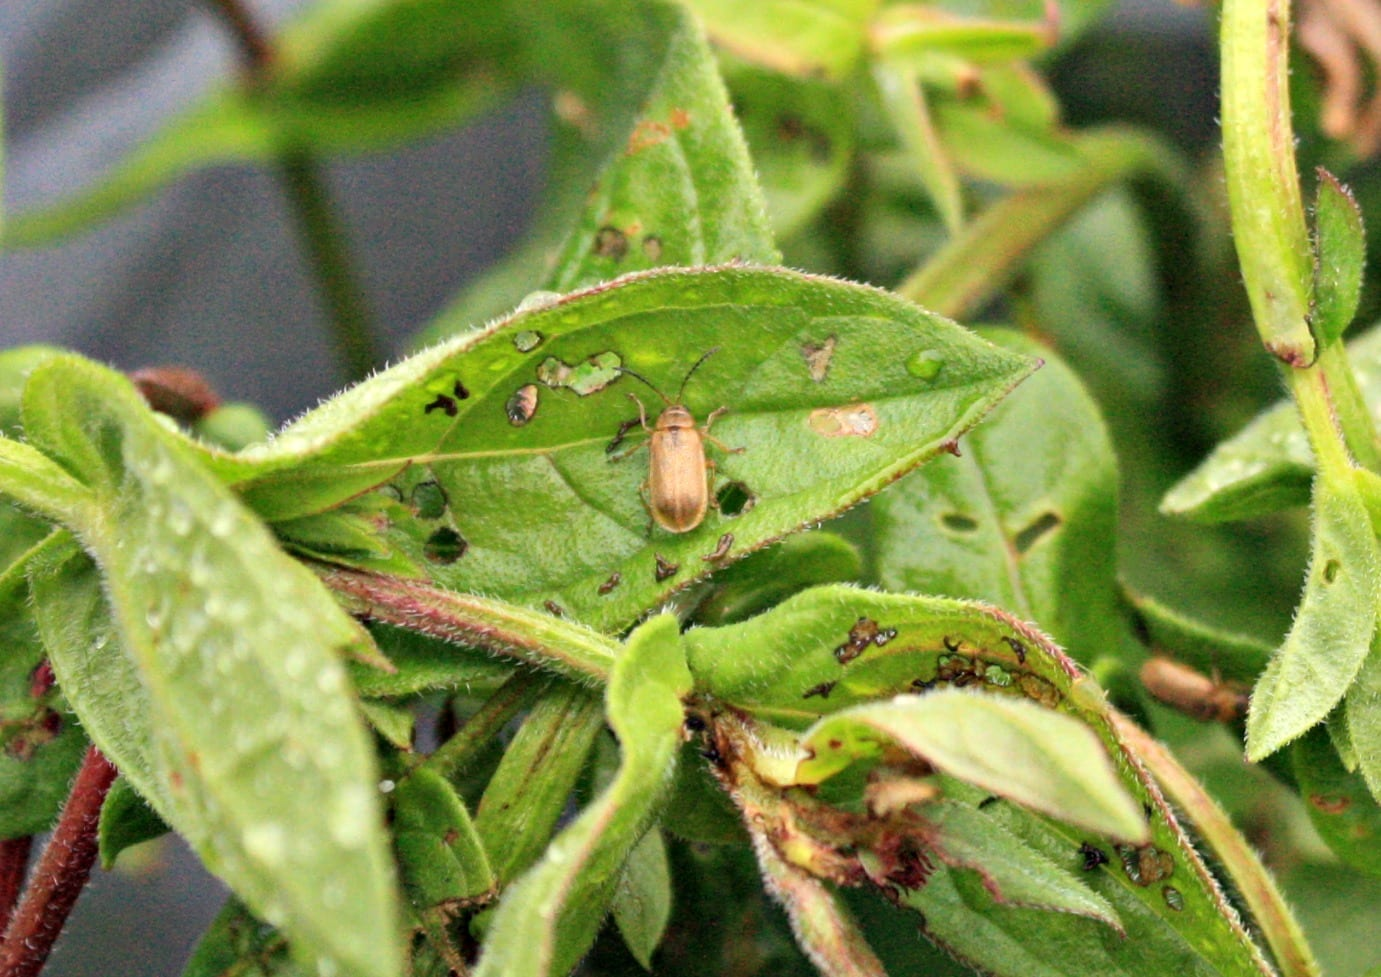 An adult beetle feeding on a plant